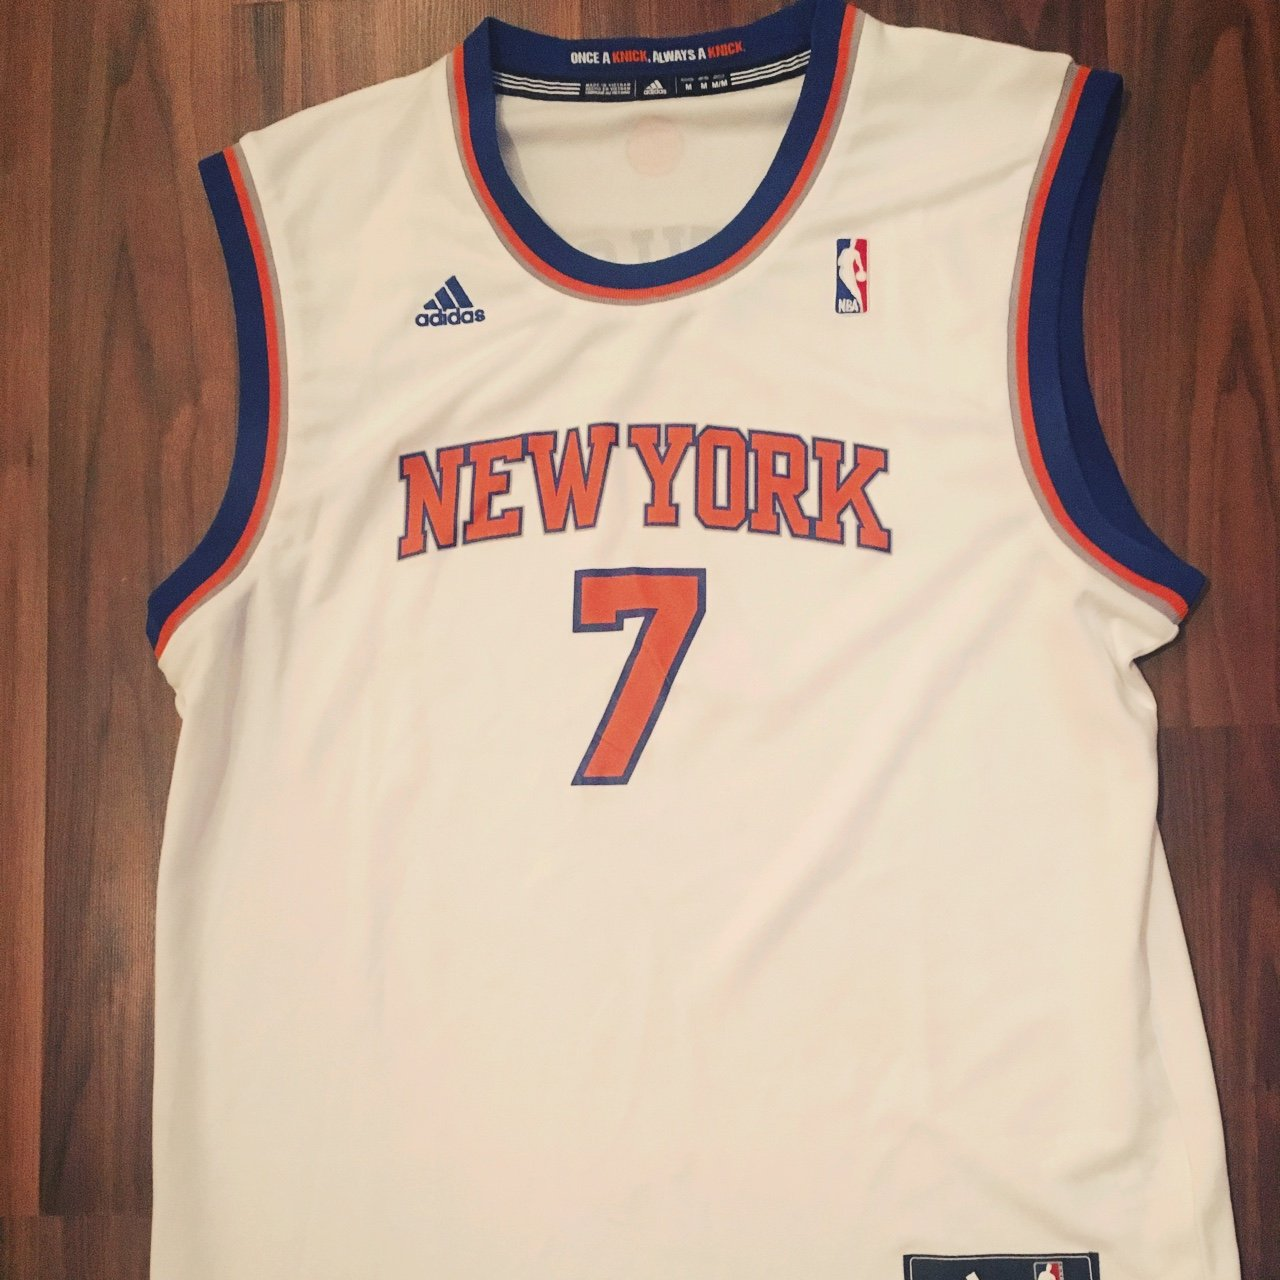 New York Knicks- Adidas Jersey with Anthony on the back - M - Depop 934086fcd